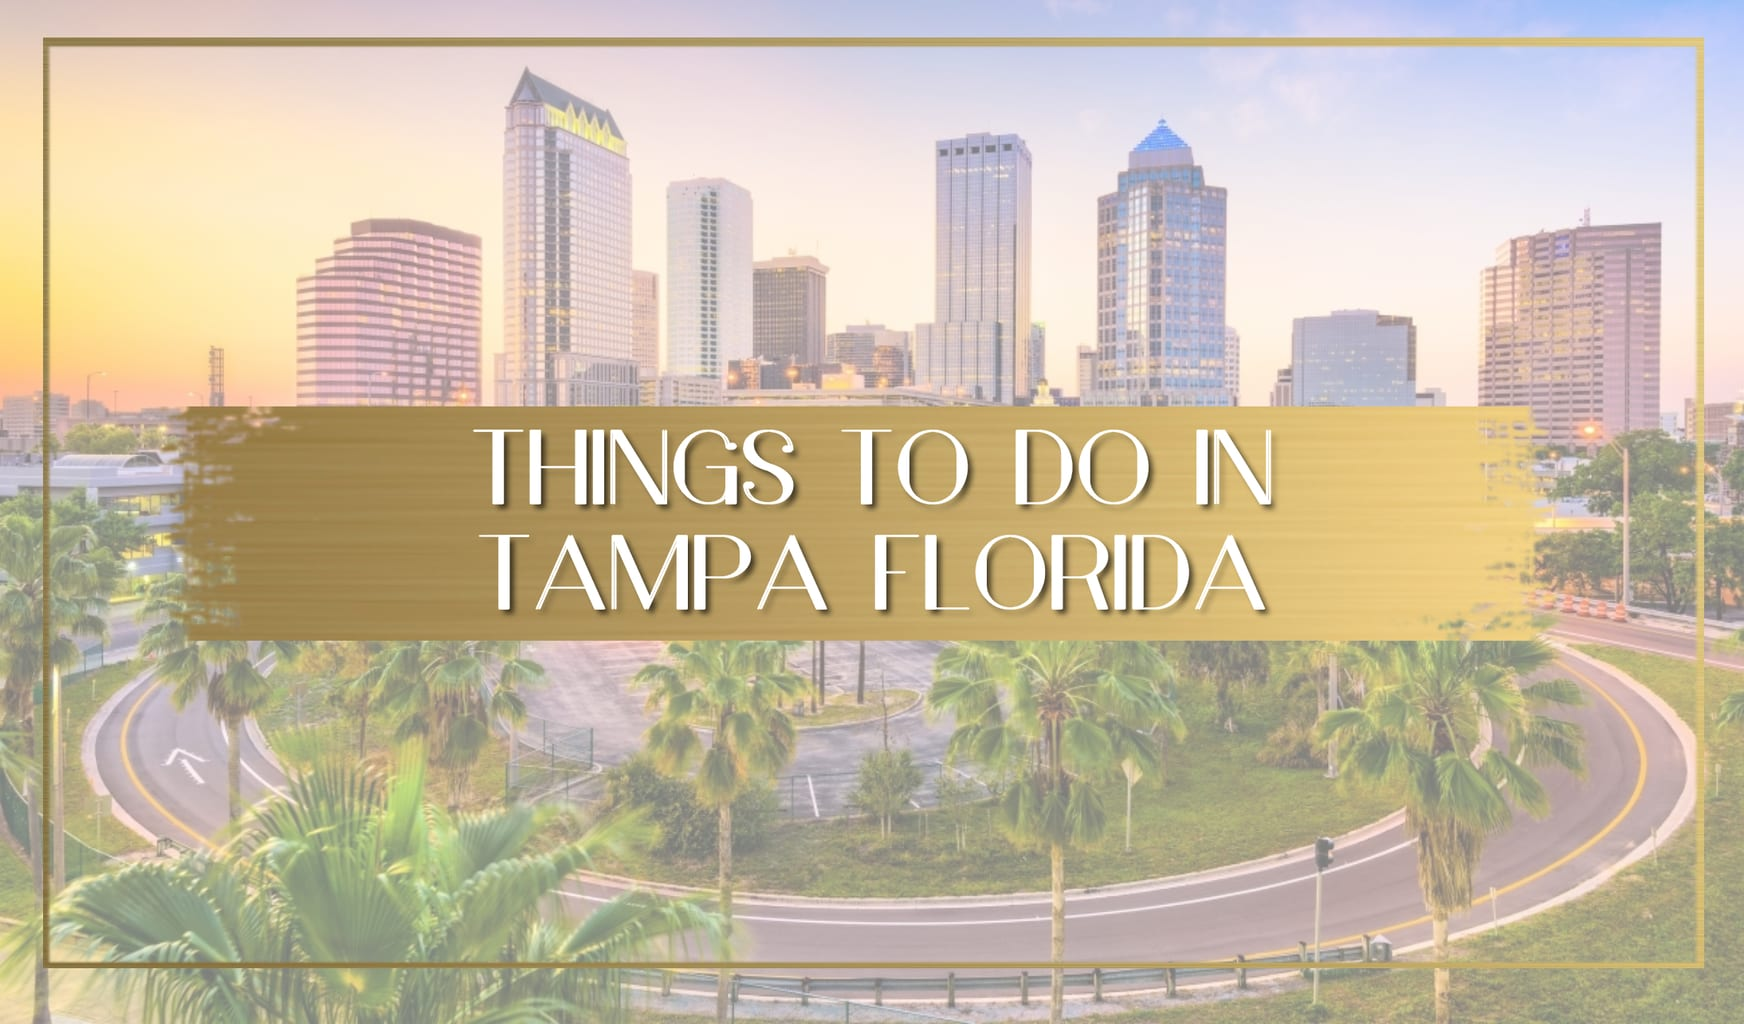 Things to do in Tampa Florida main